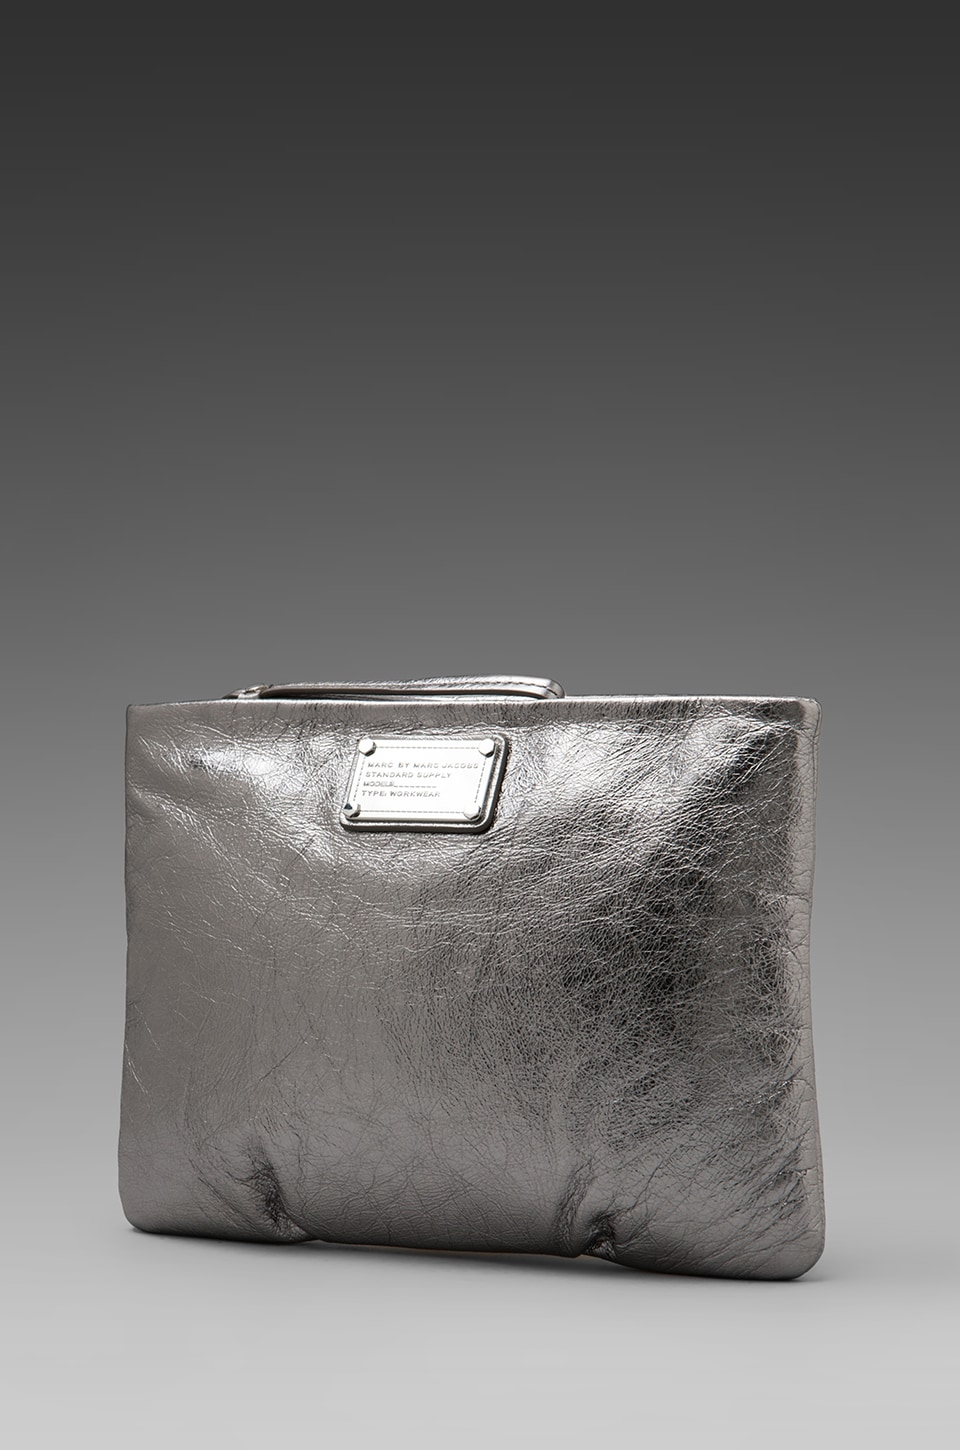 Marc by Marc Jacobs Classic Q Tablet Wristlet in Shiny Gunmetal